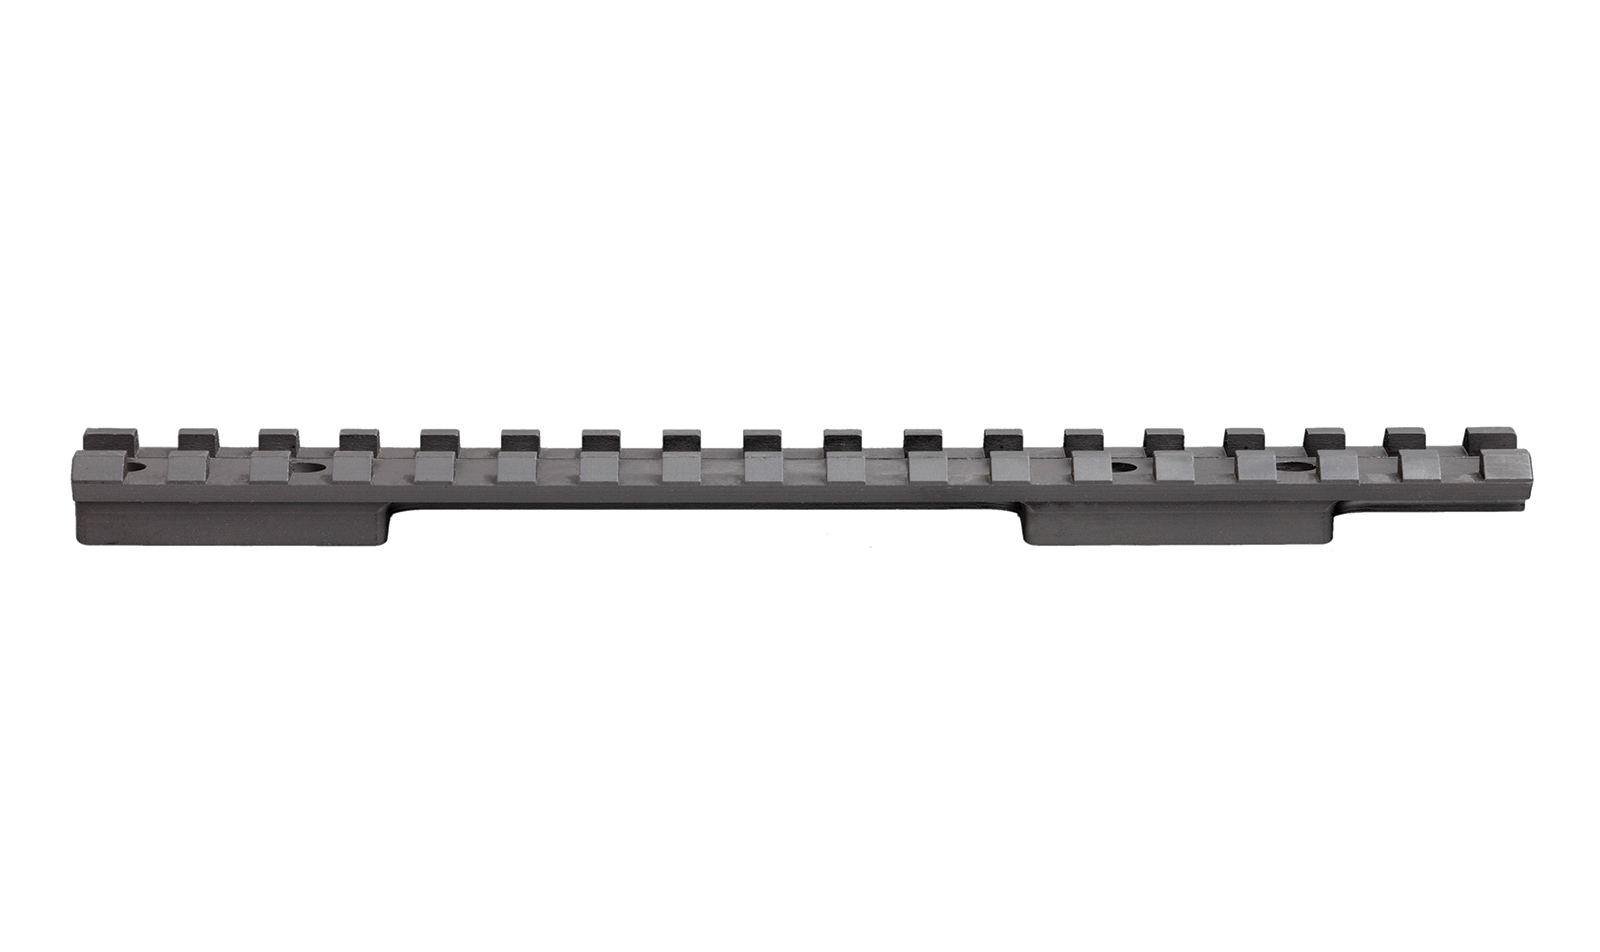 7 in. Full 1913 Picatinny Steel Rail for Savage® Accu Trigger Short Action